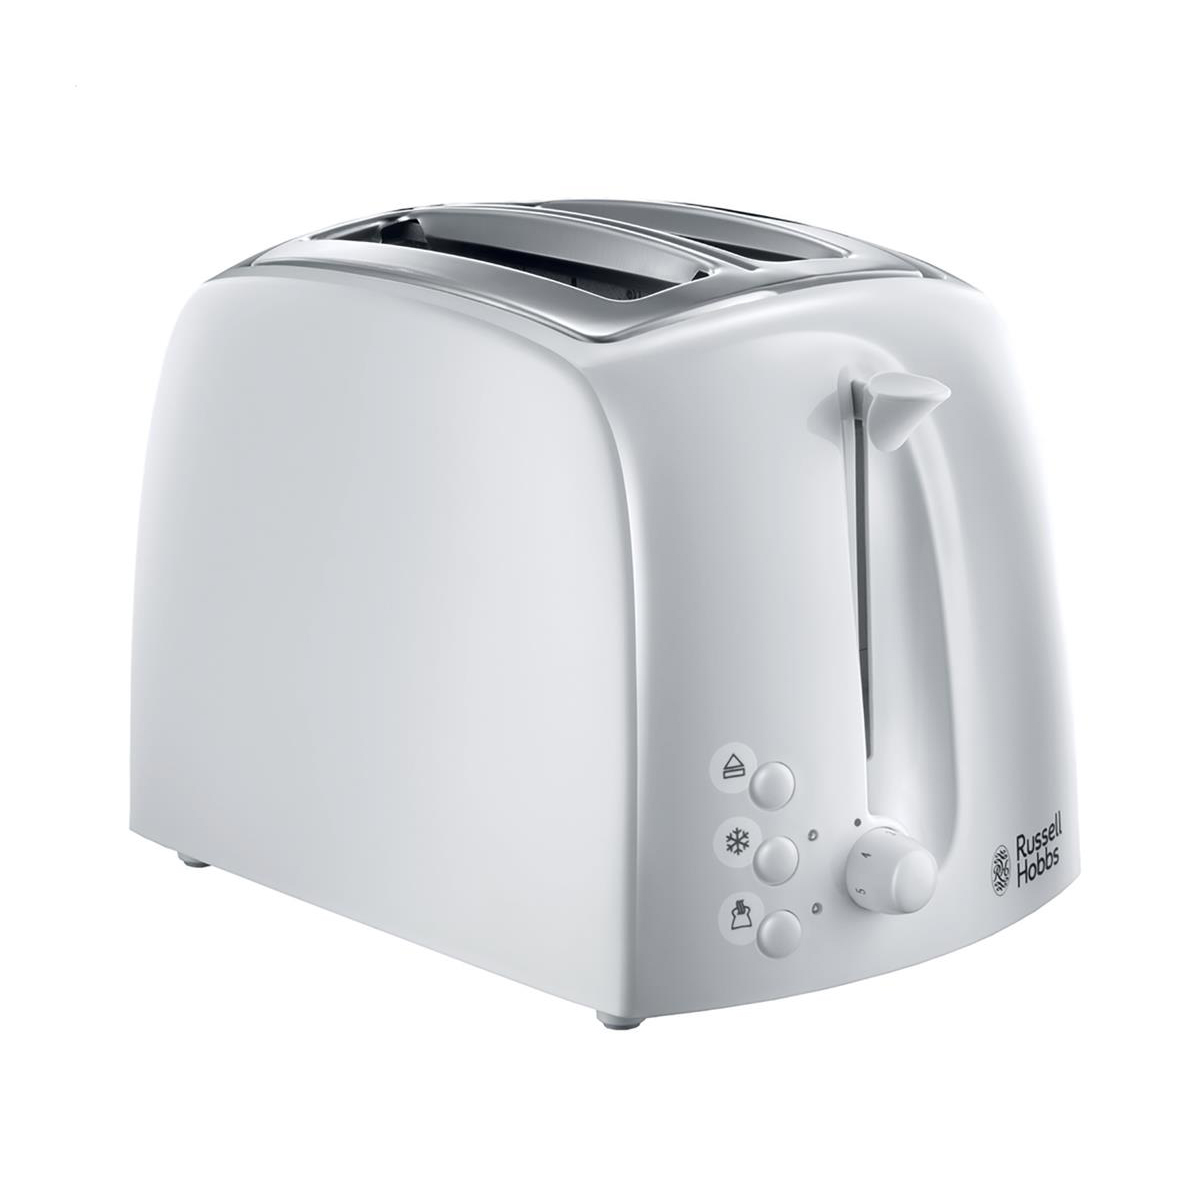 Russell Hobbs Textures Toaster Reheat Defrost Crumb Tray Auto-off White Ref RH2164